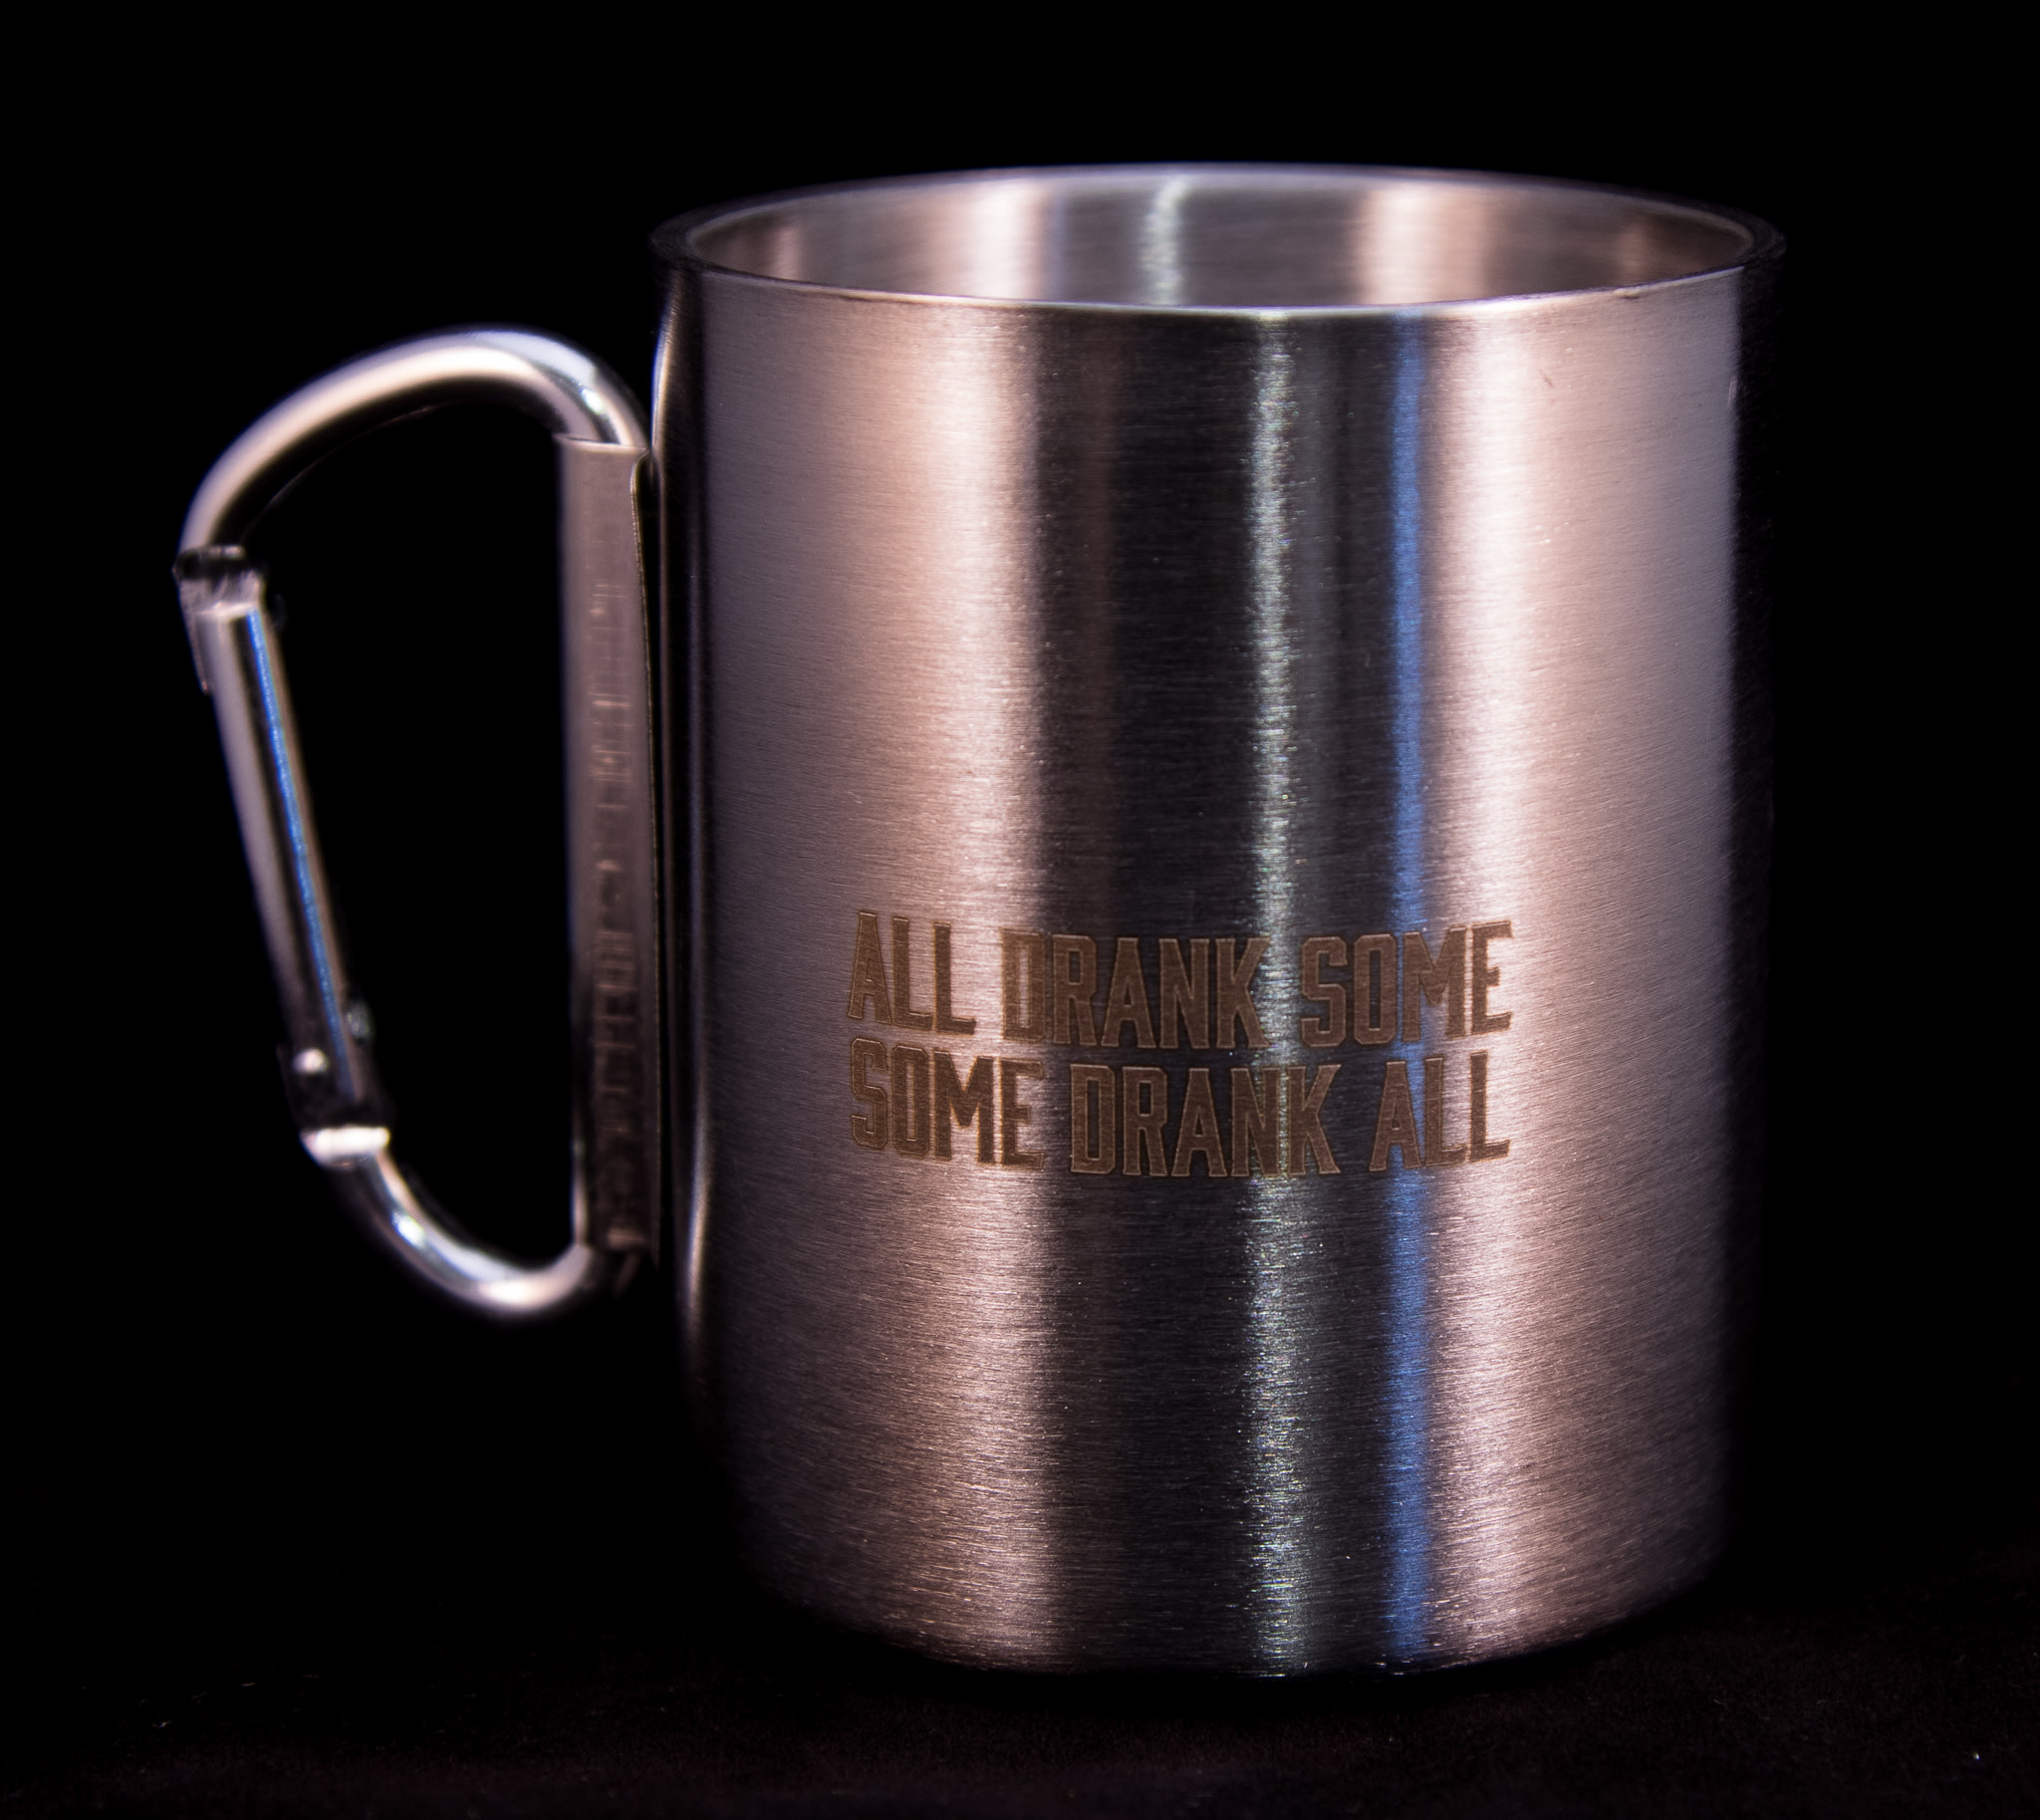 10th Mountain Whiskey & Spirit Co. Carabiner Coffee Cup